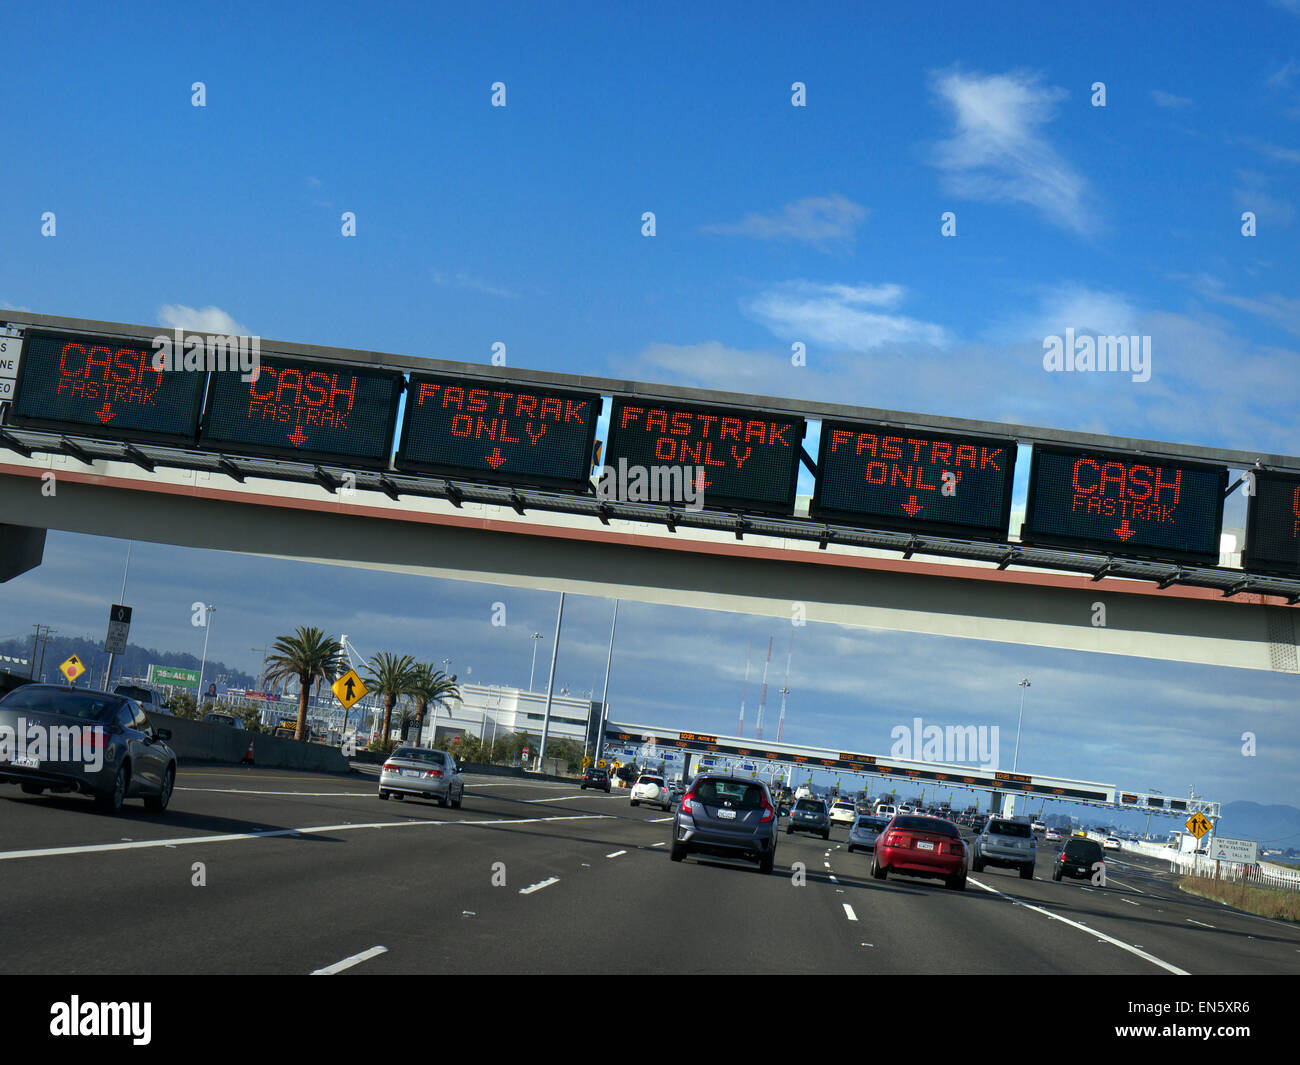 Car POV of Toll Booths and Fastrak signs on gantry over Interstate 80 highway to San Francisco City California USA - Stock Image